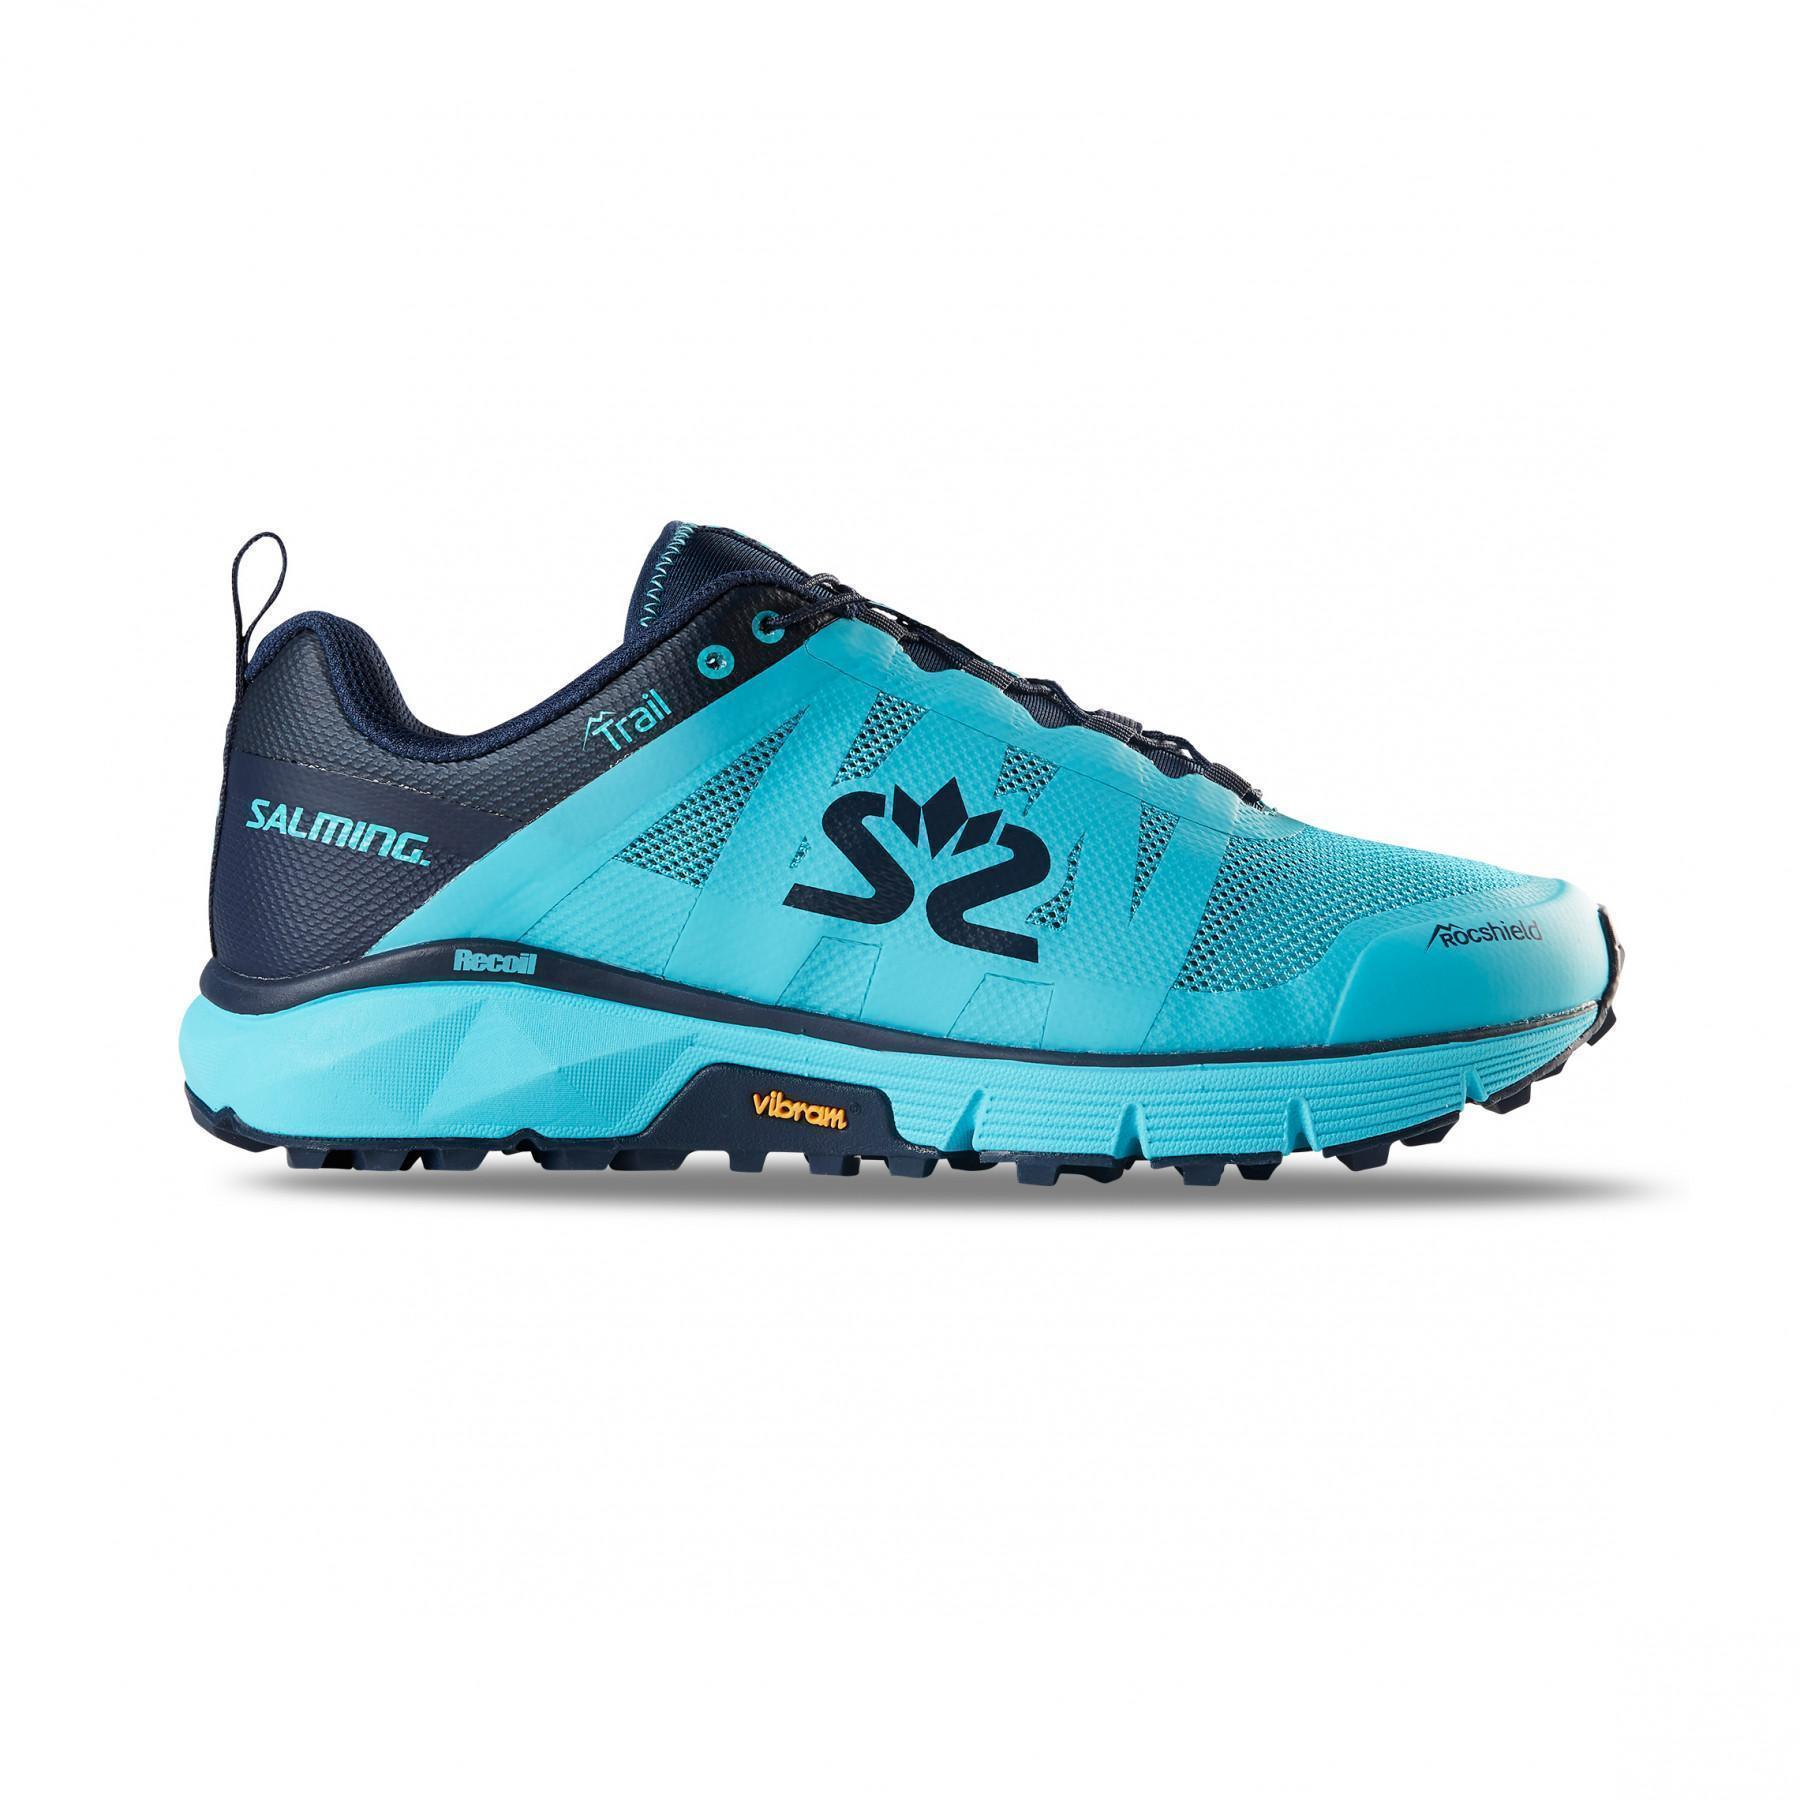 Salming Trail T6 Women's Shoes